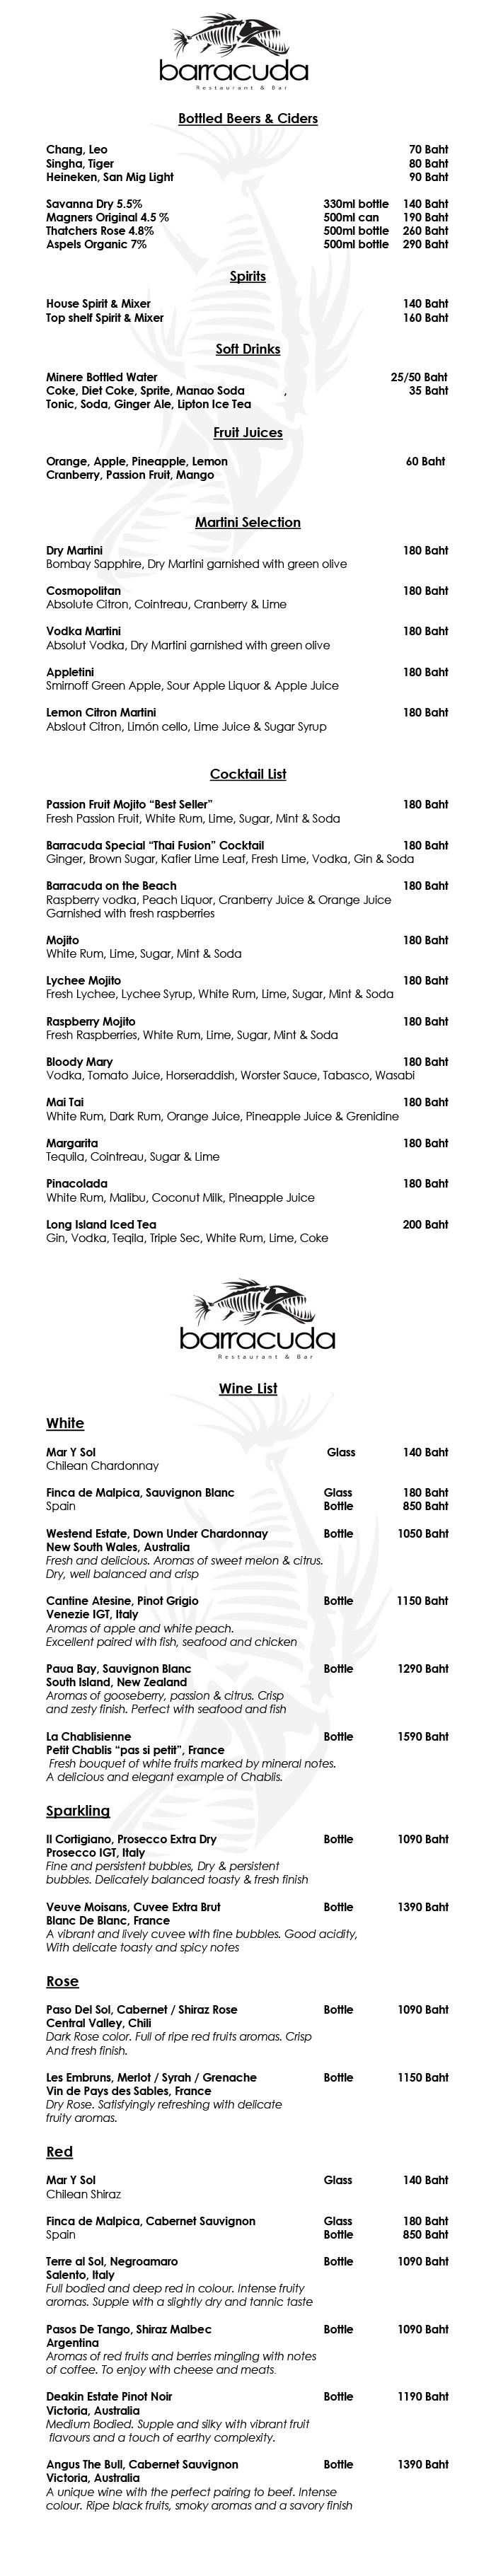 Barracuda Restaurant And Bar Menus Drinks Menu